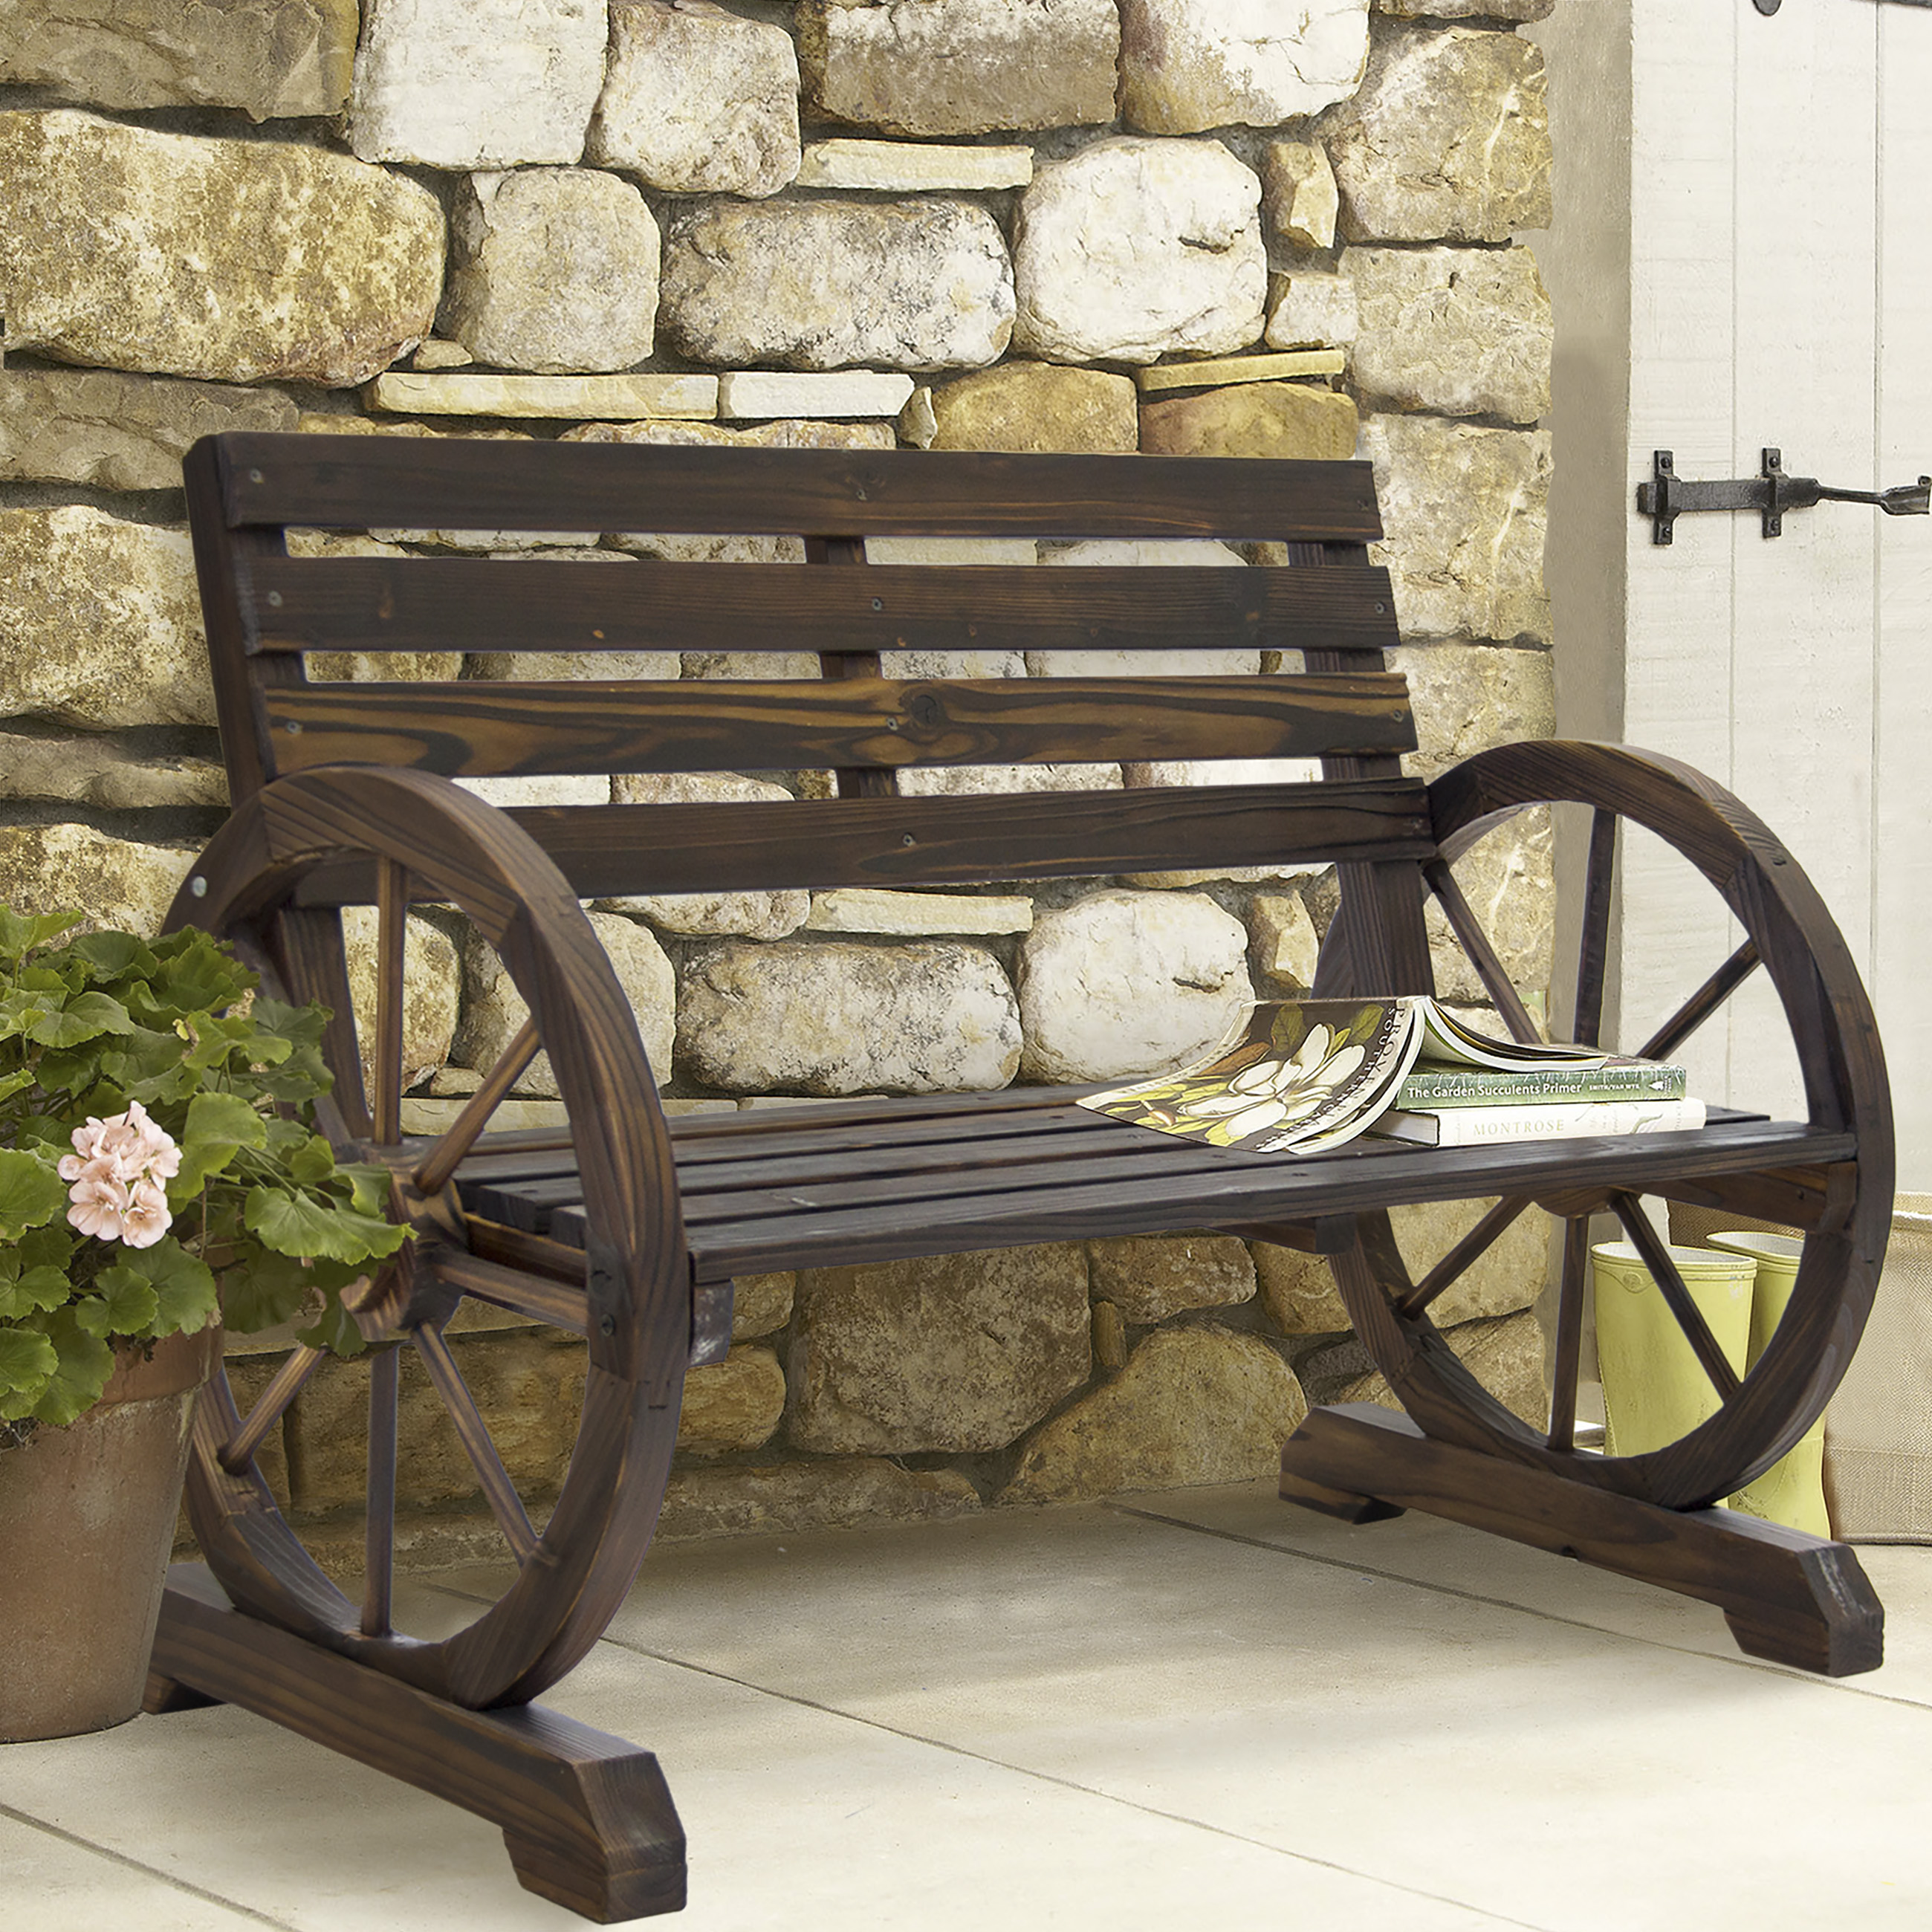 BCP Patio Garden Wooden Wagon Wheel Bench Rustic Wood Design Outdoor Furniture